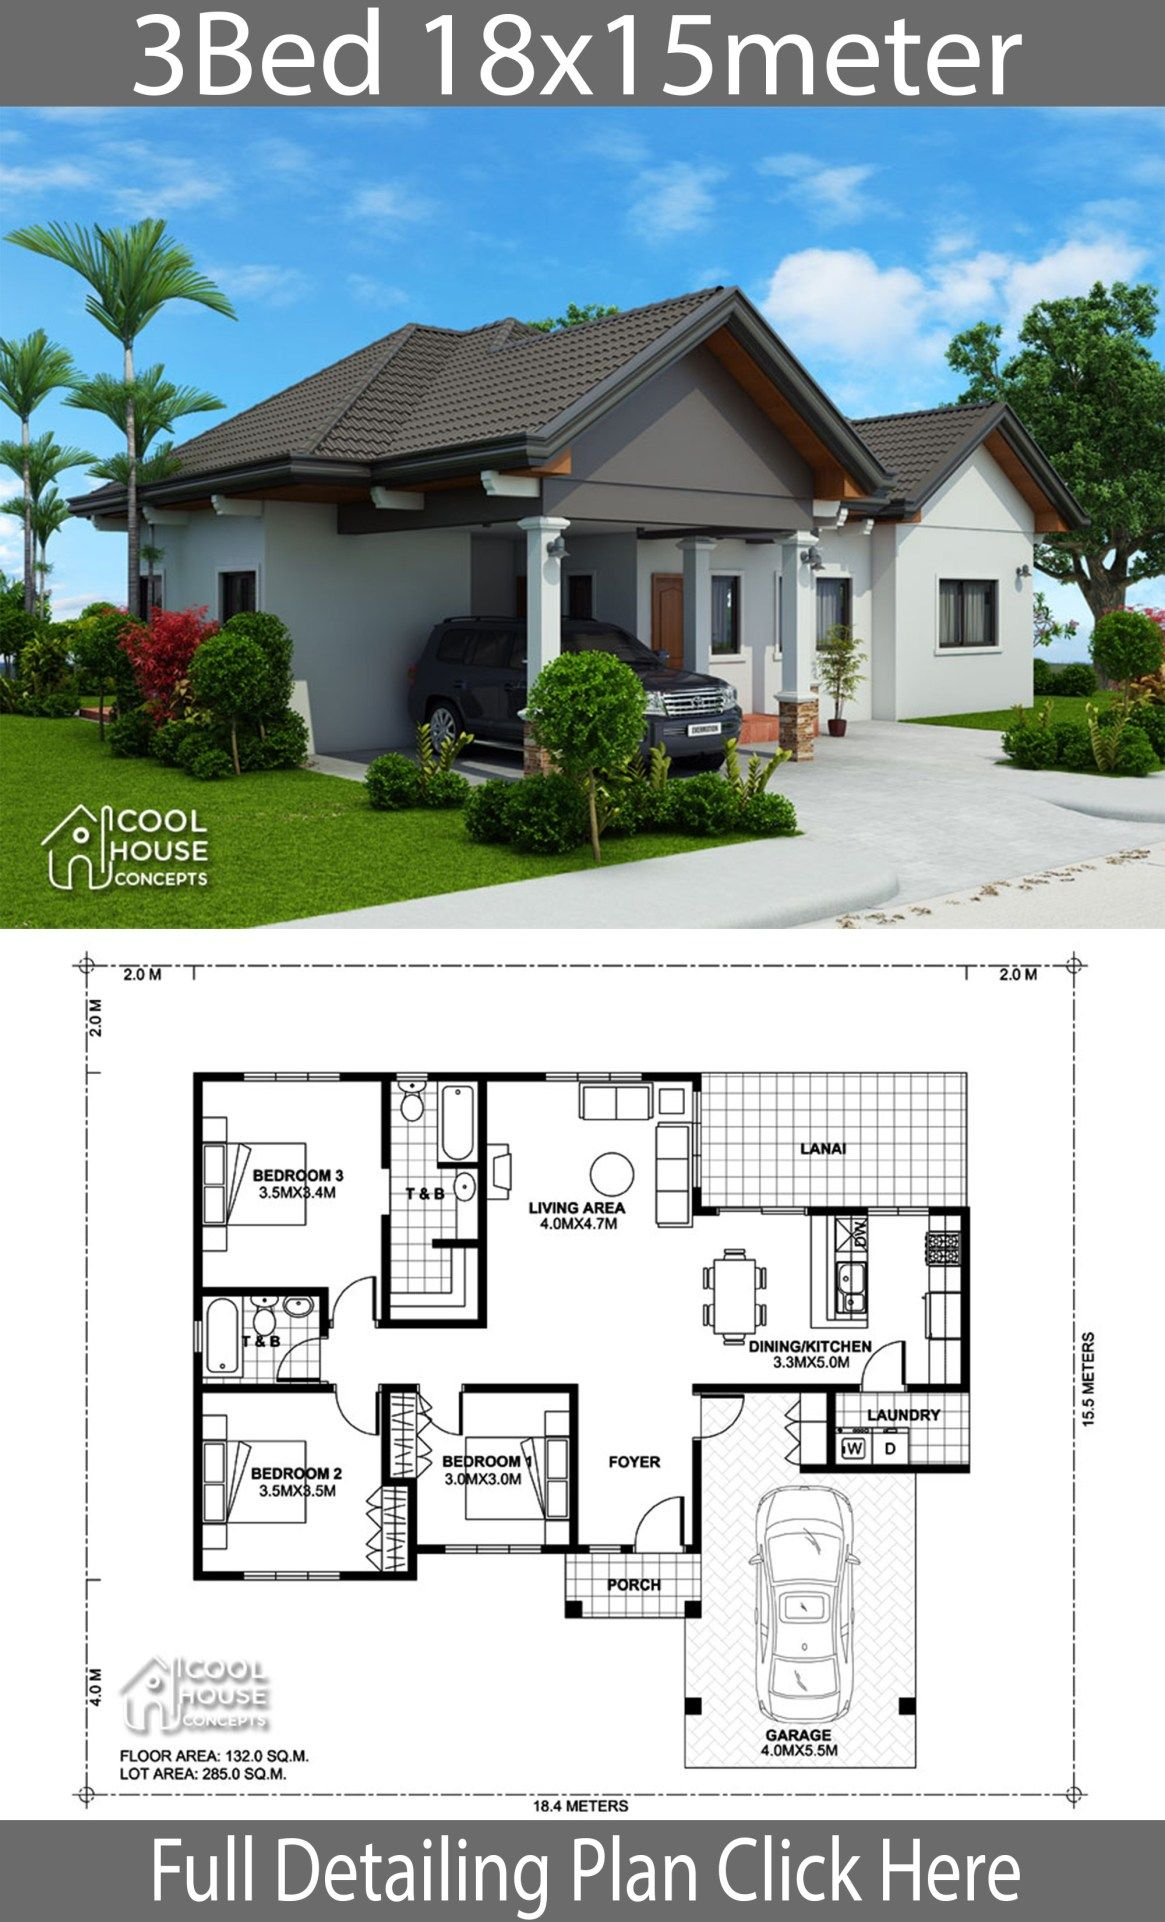 Home Design Plan 18x15m With 3 Bedrooms Home Design With Plansearch Town House Plans Affordable House Plans Model House Plan